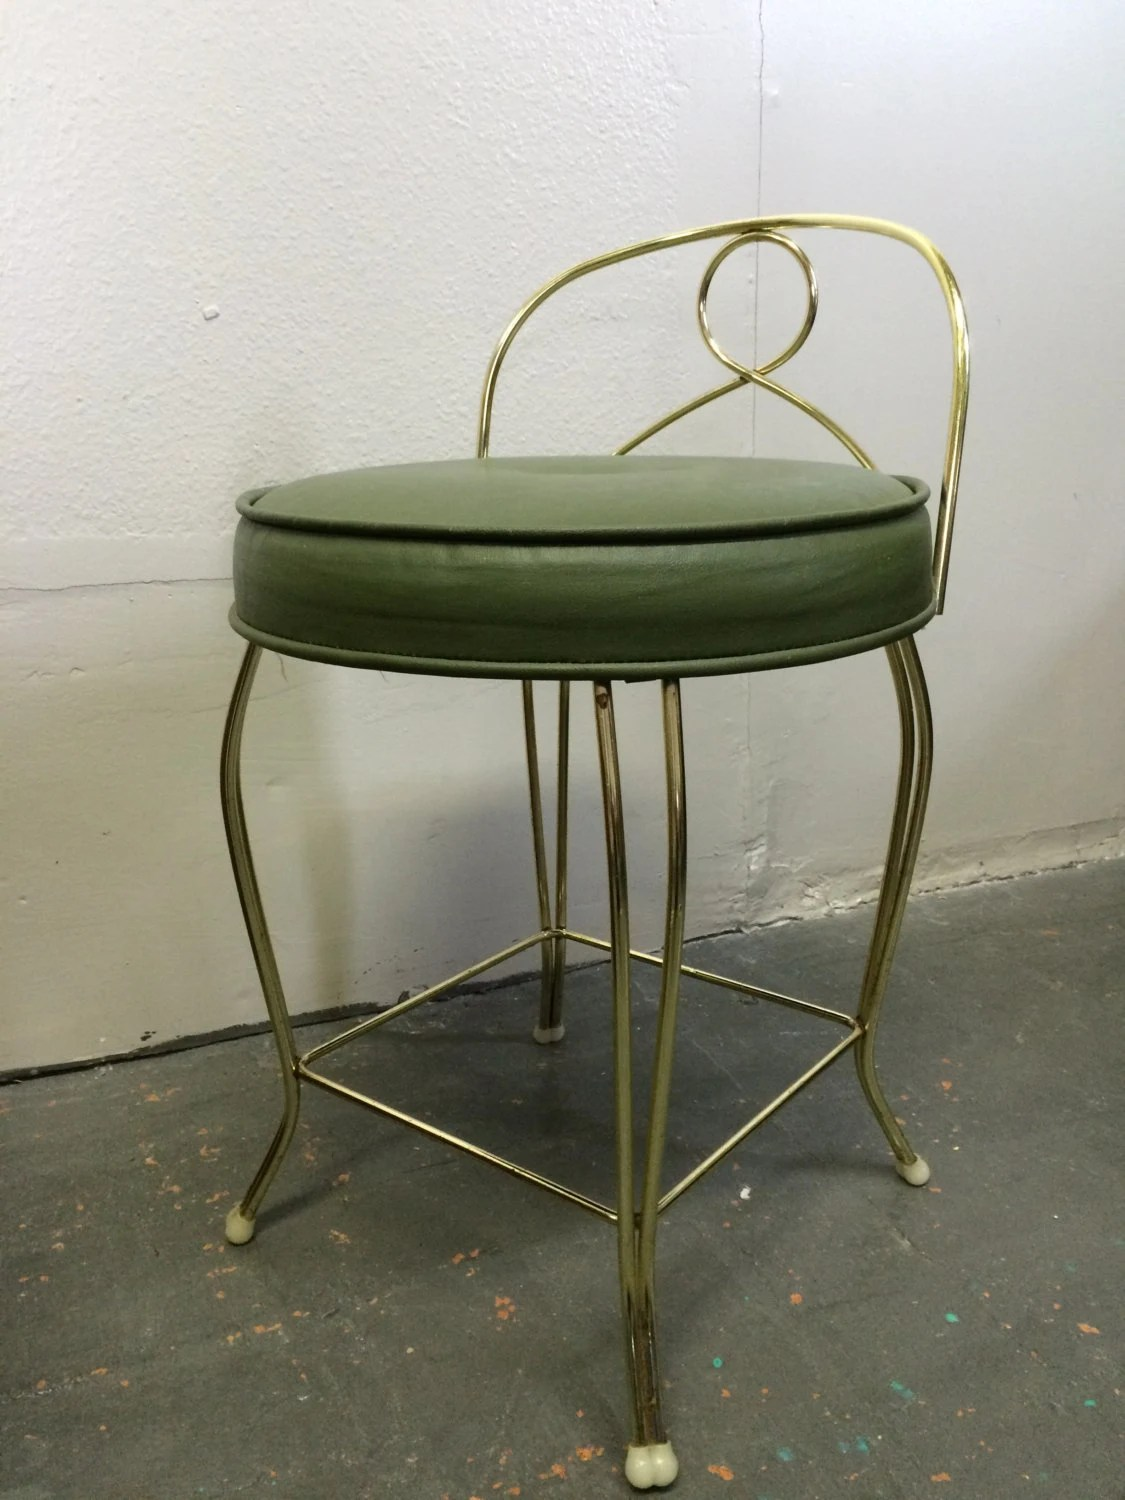 Modern Vanity Chair Mid Century Modern Vintage Vanity Chair Stool With Green